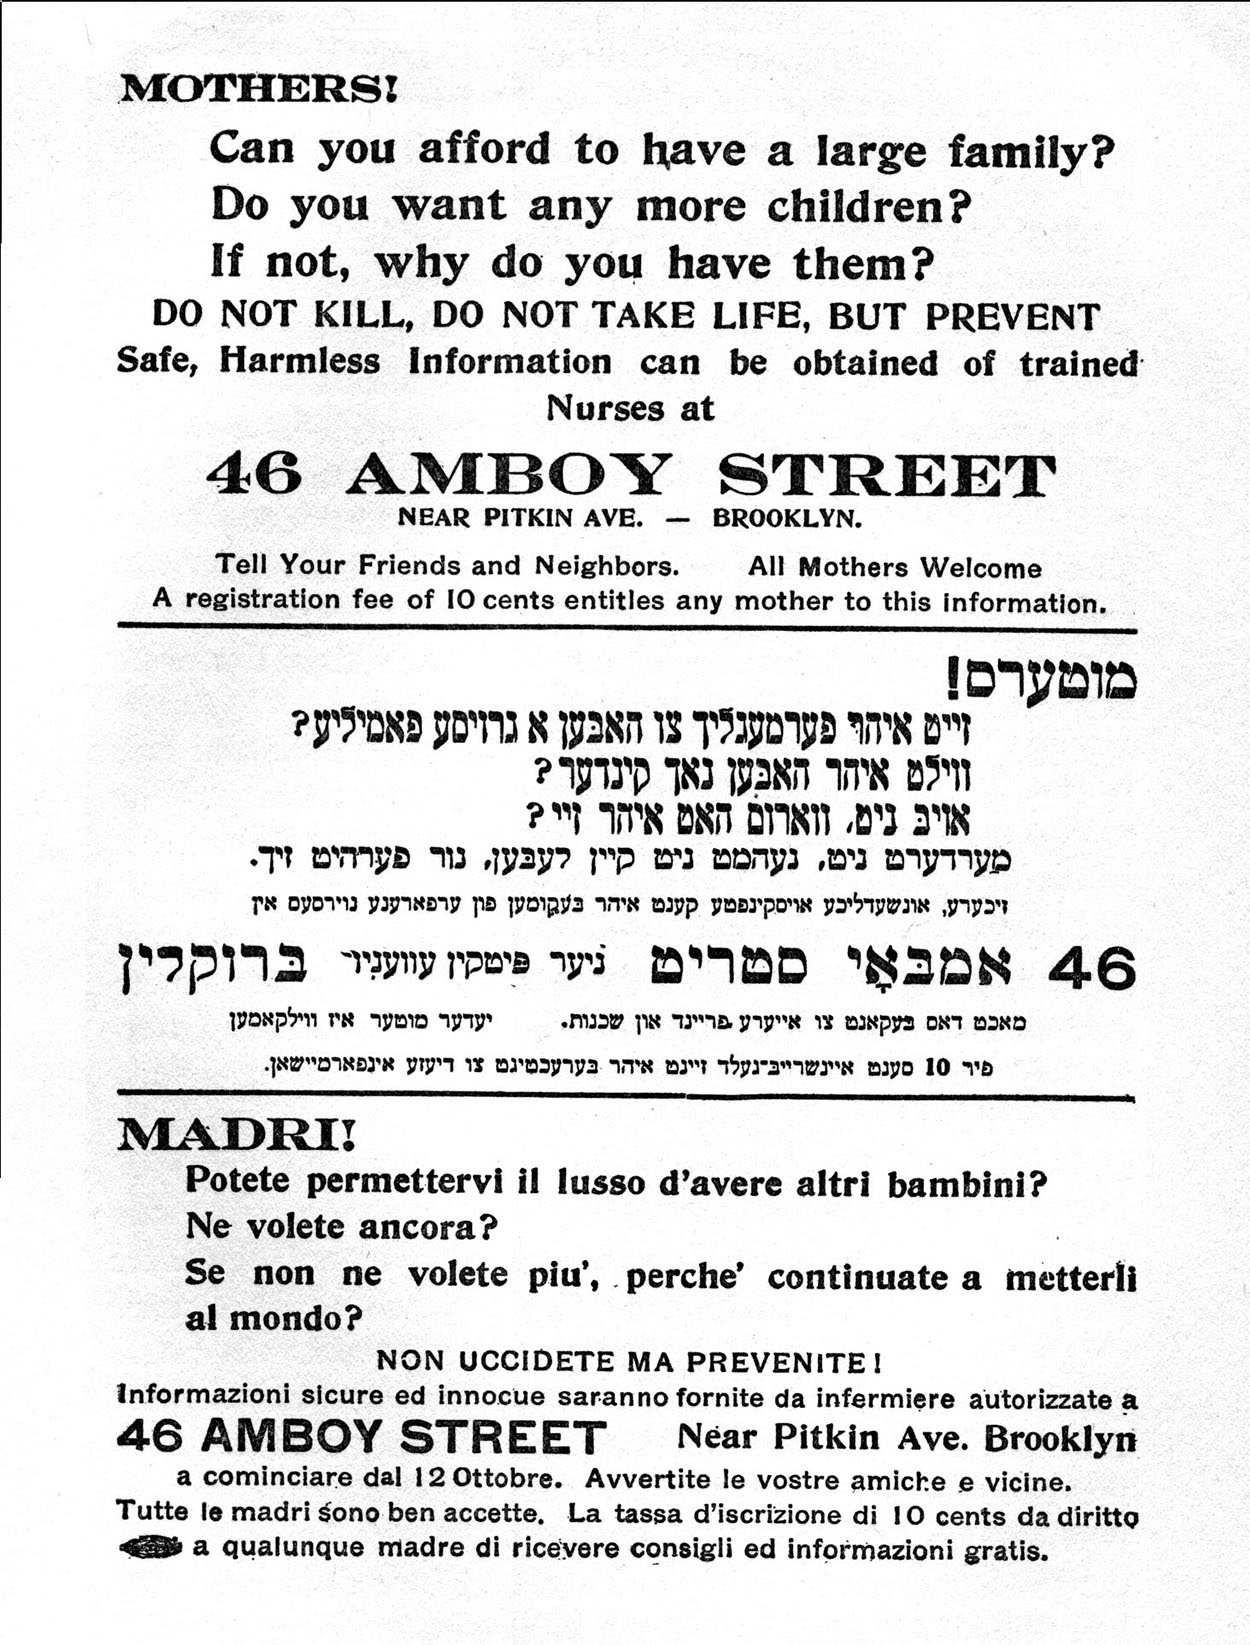 Flyer urging women to come to a clinic in Brooklyn to learn about reproductive education. Written in black lettering in English, Yiddish, and Italian.